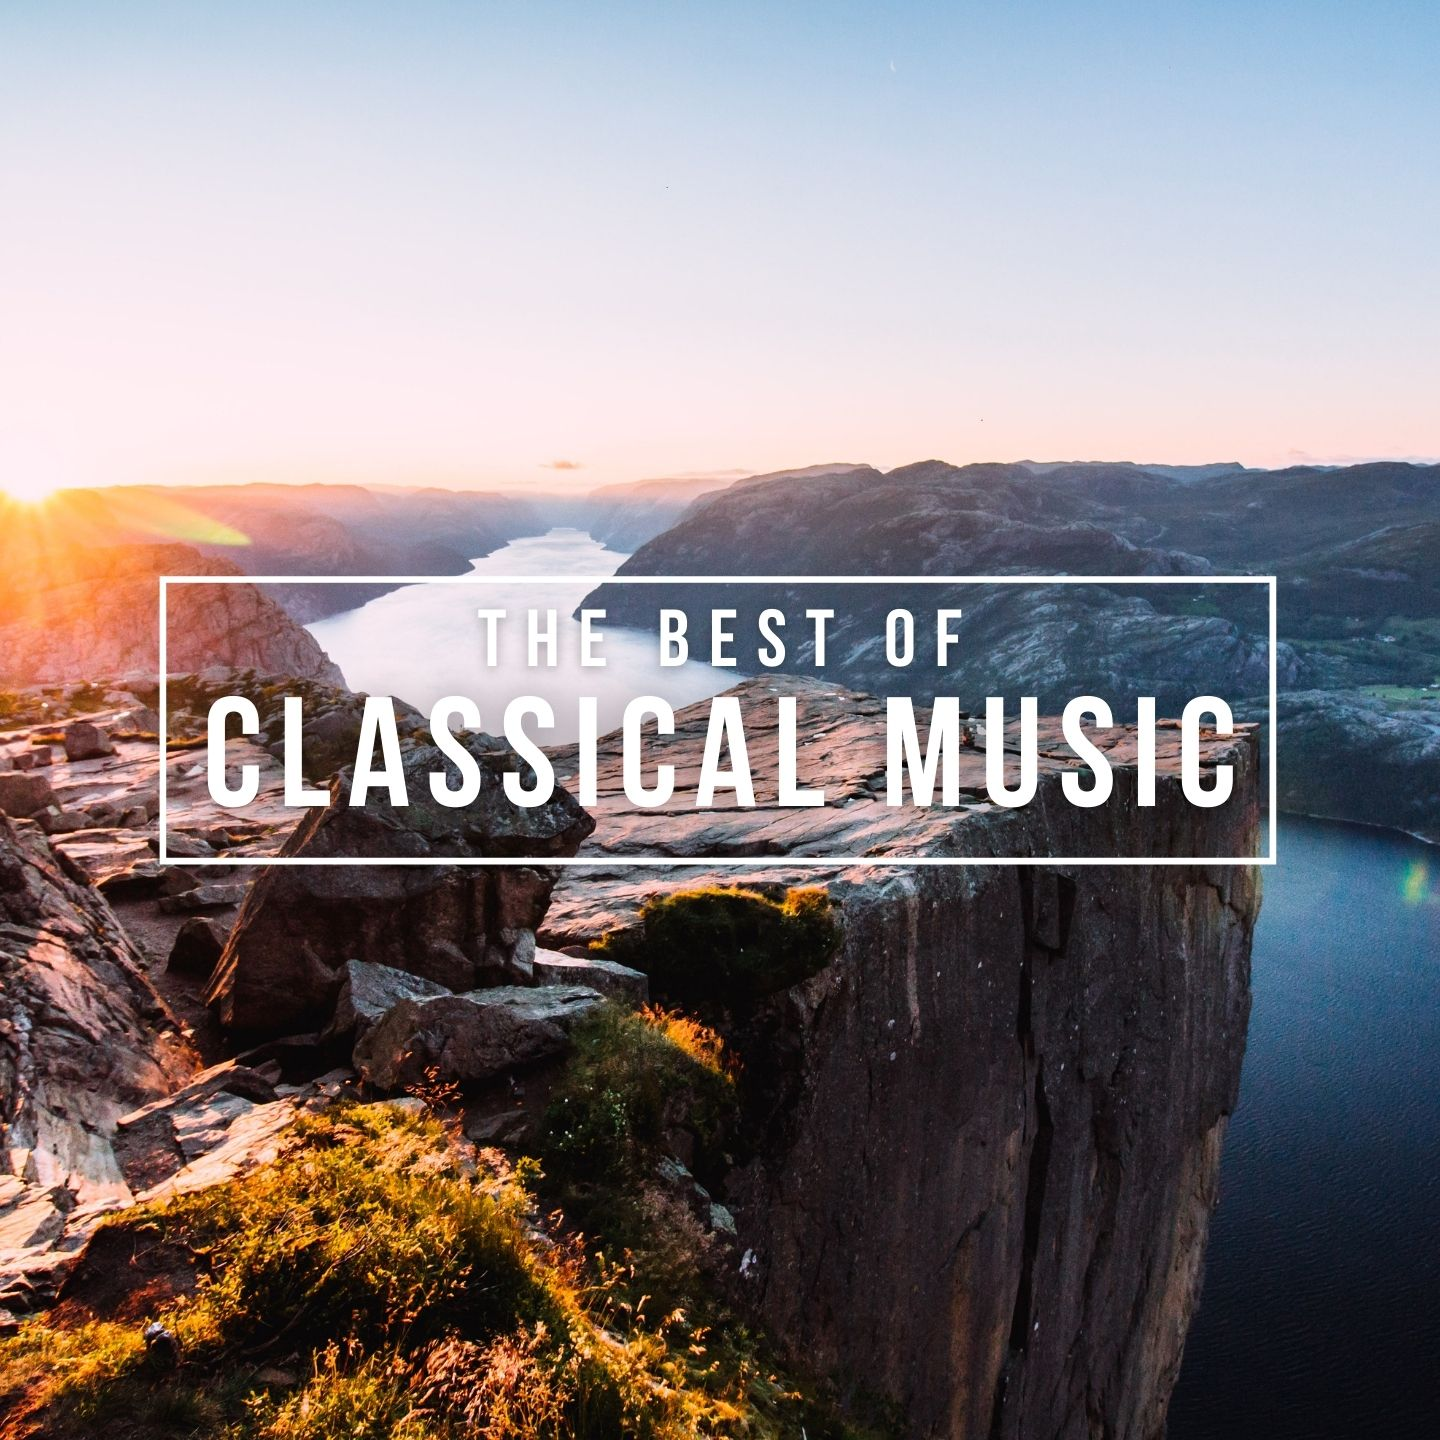 The Best of Classical Music